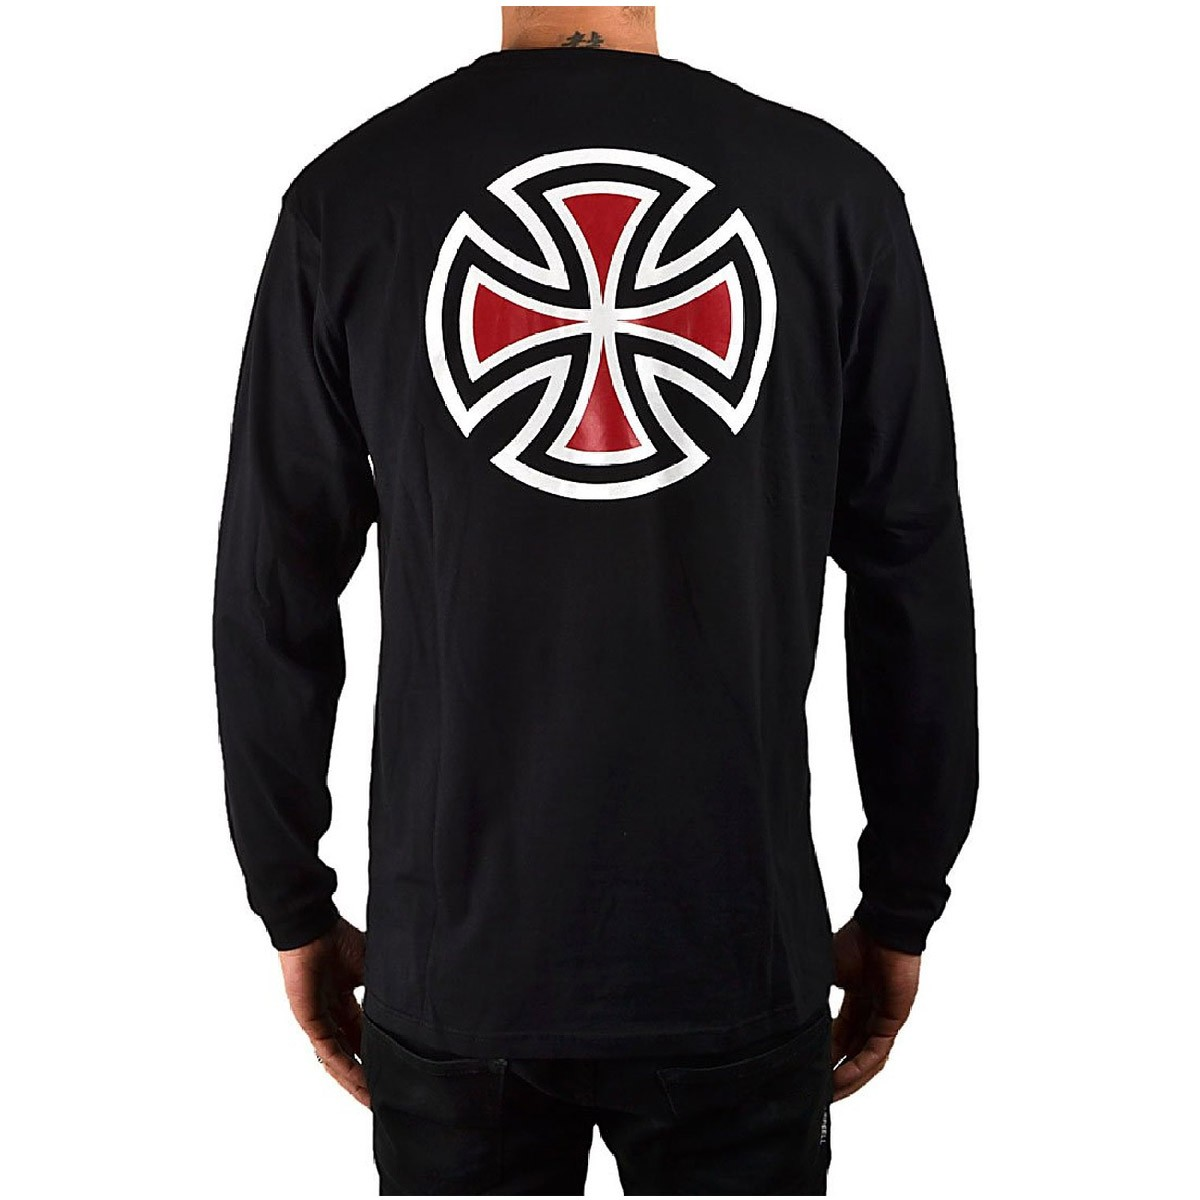 Independent bar cross long sleeve t shirt black for Long sleeve black tee shirts